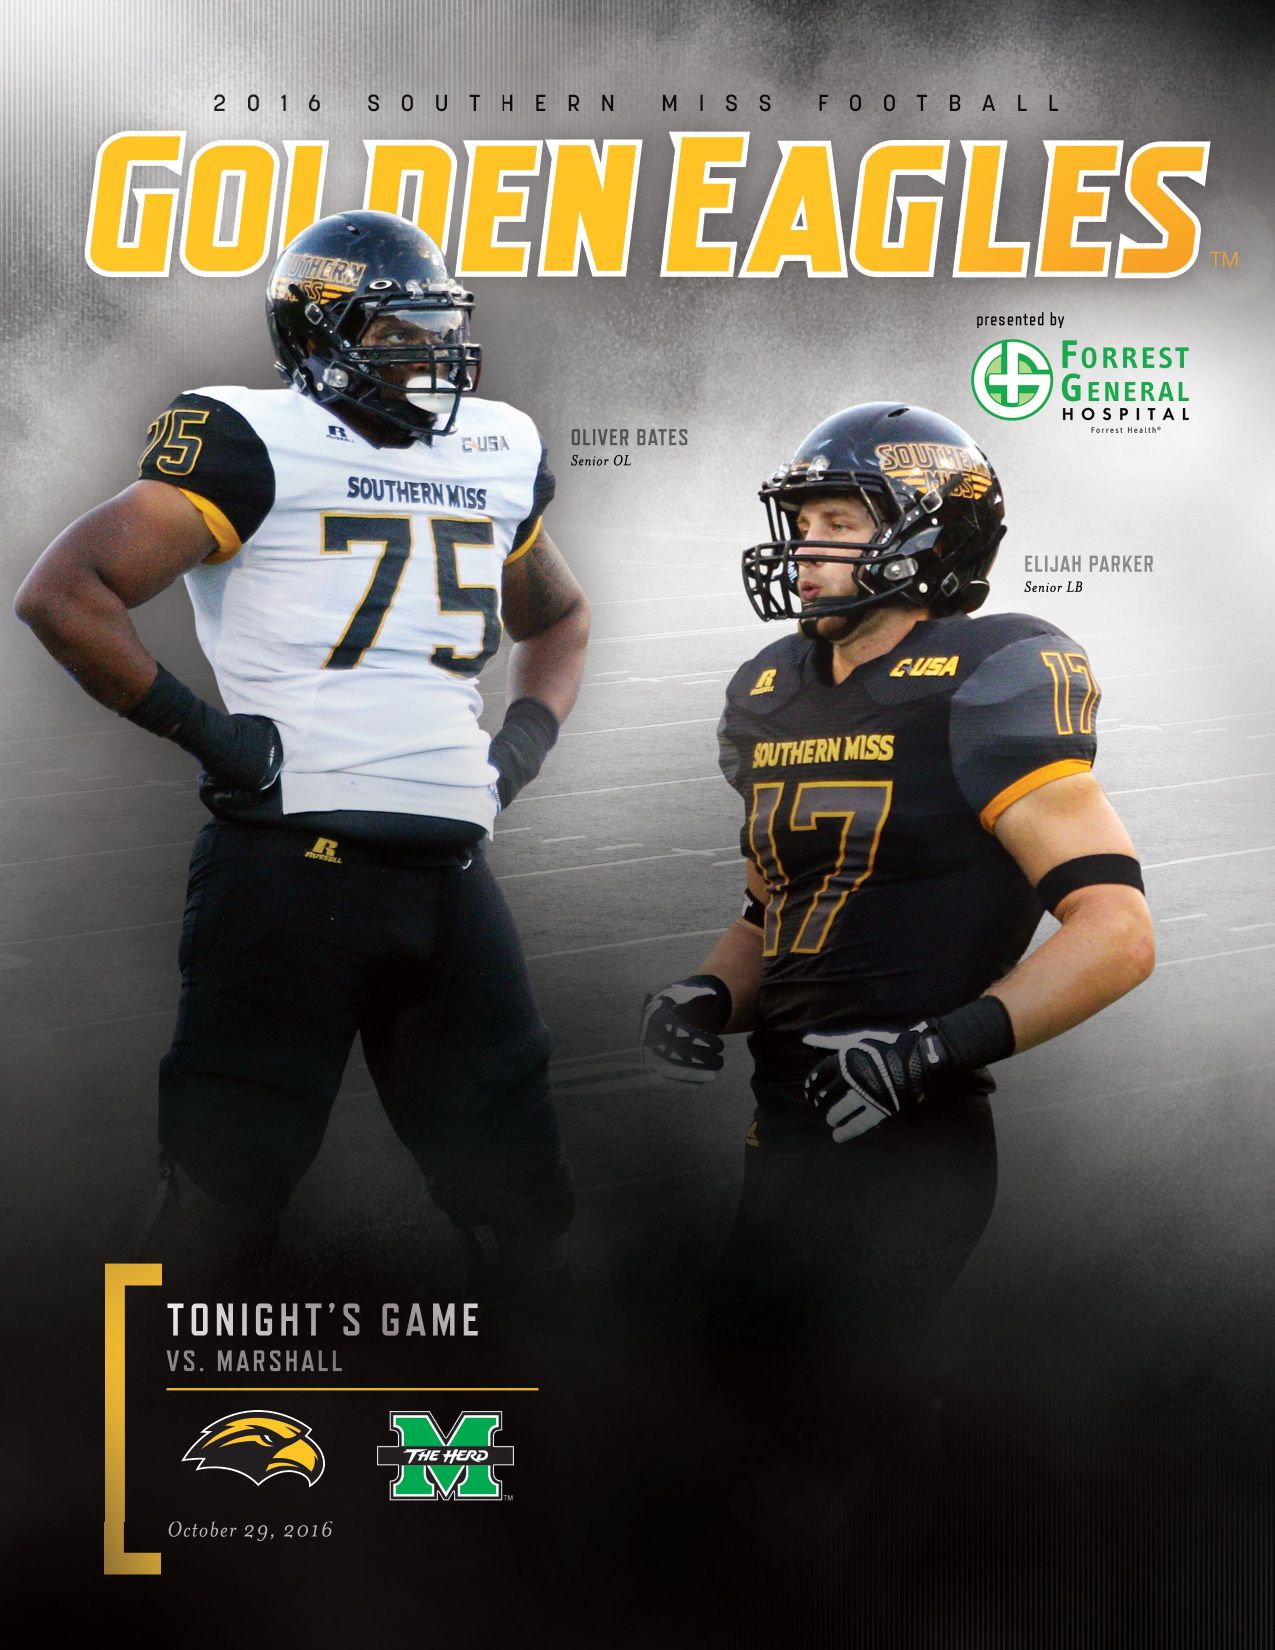 The official roster card for usmgoldeneagles Football vs